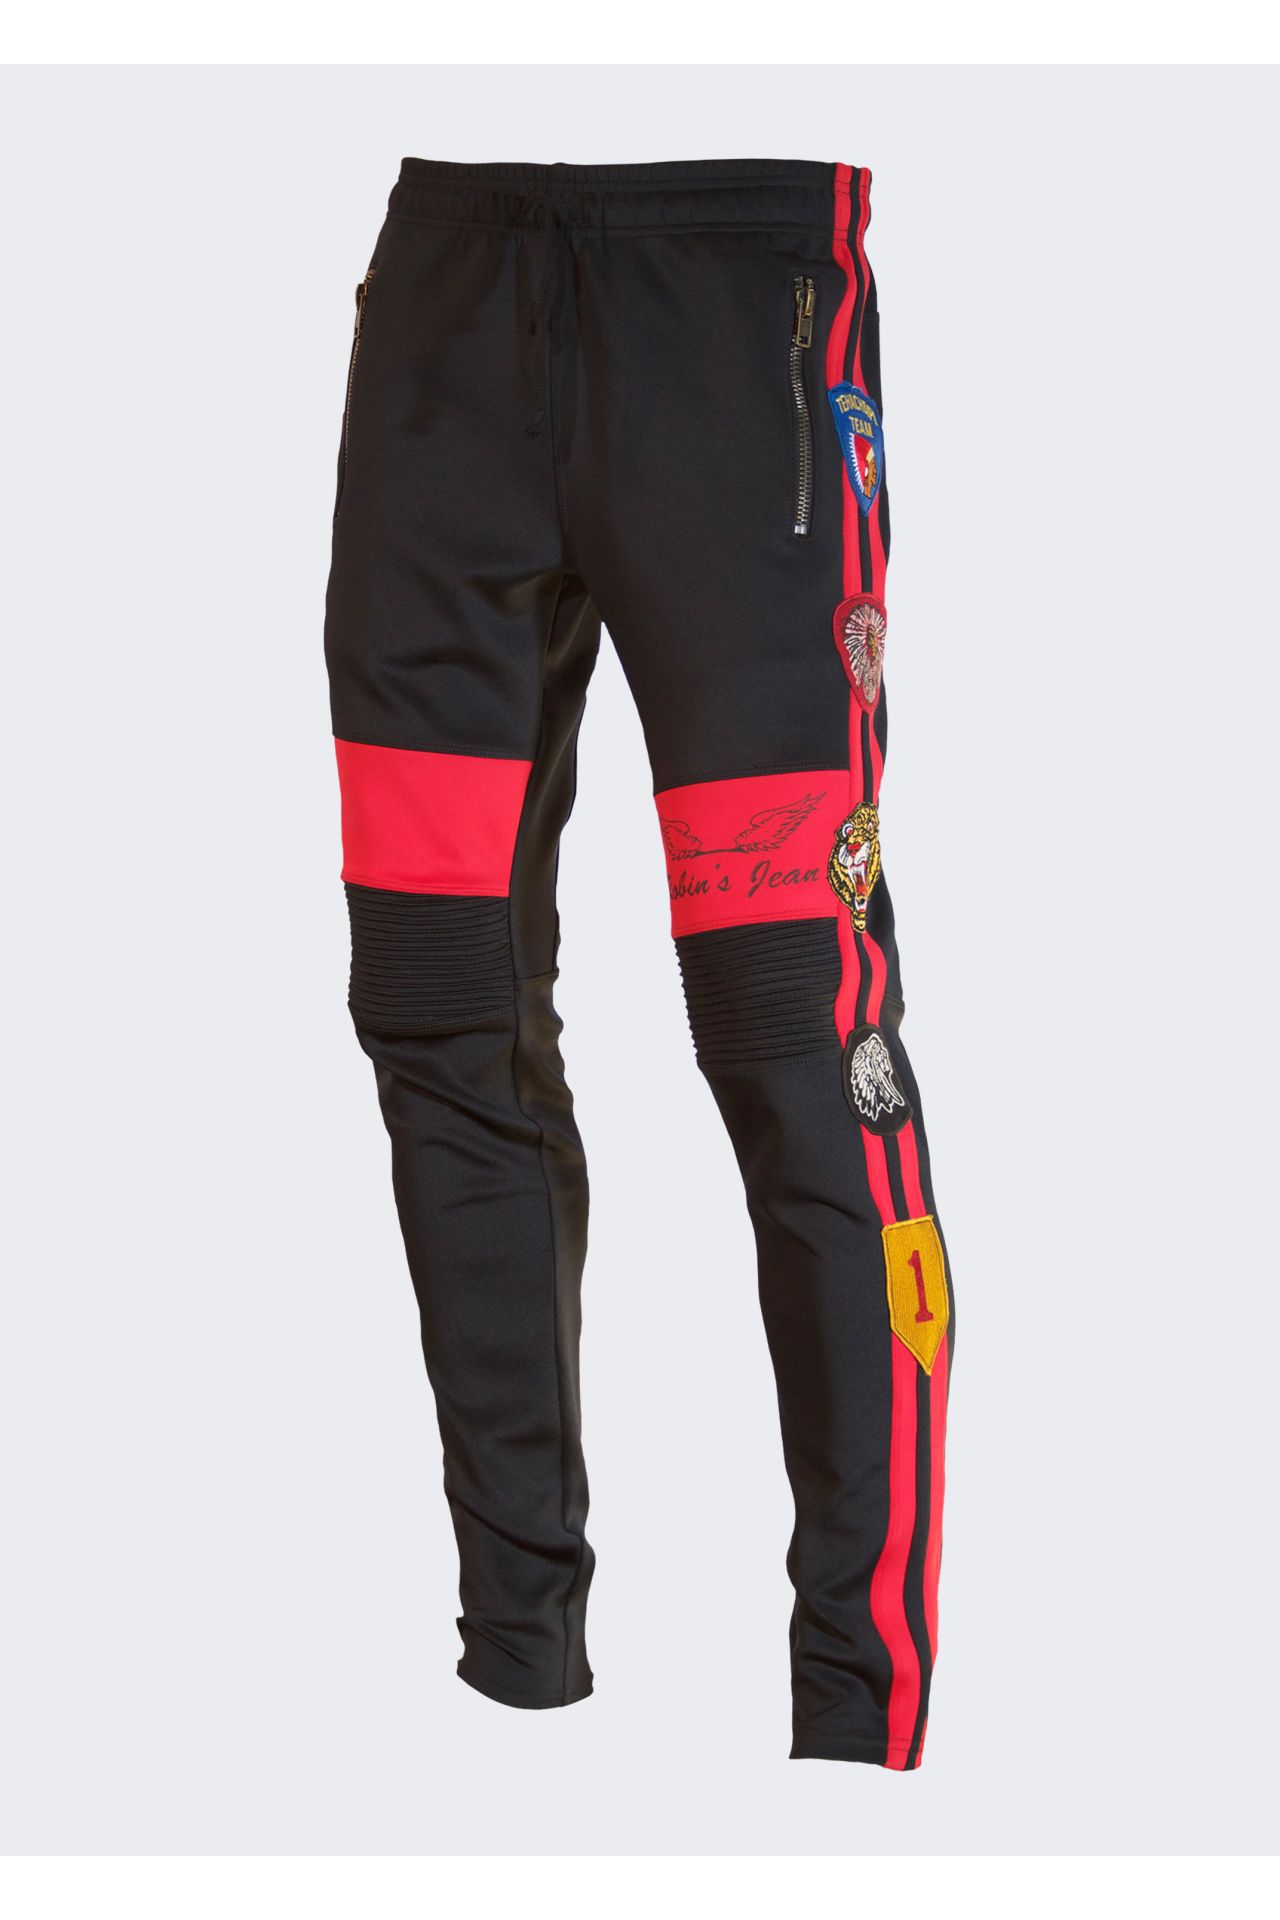 ROBIN'S JOGGER IN BLACK WITH PATCHES